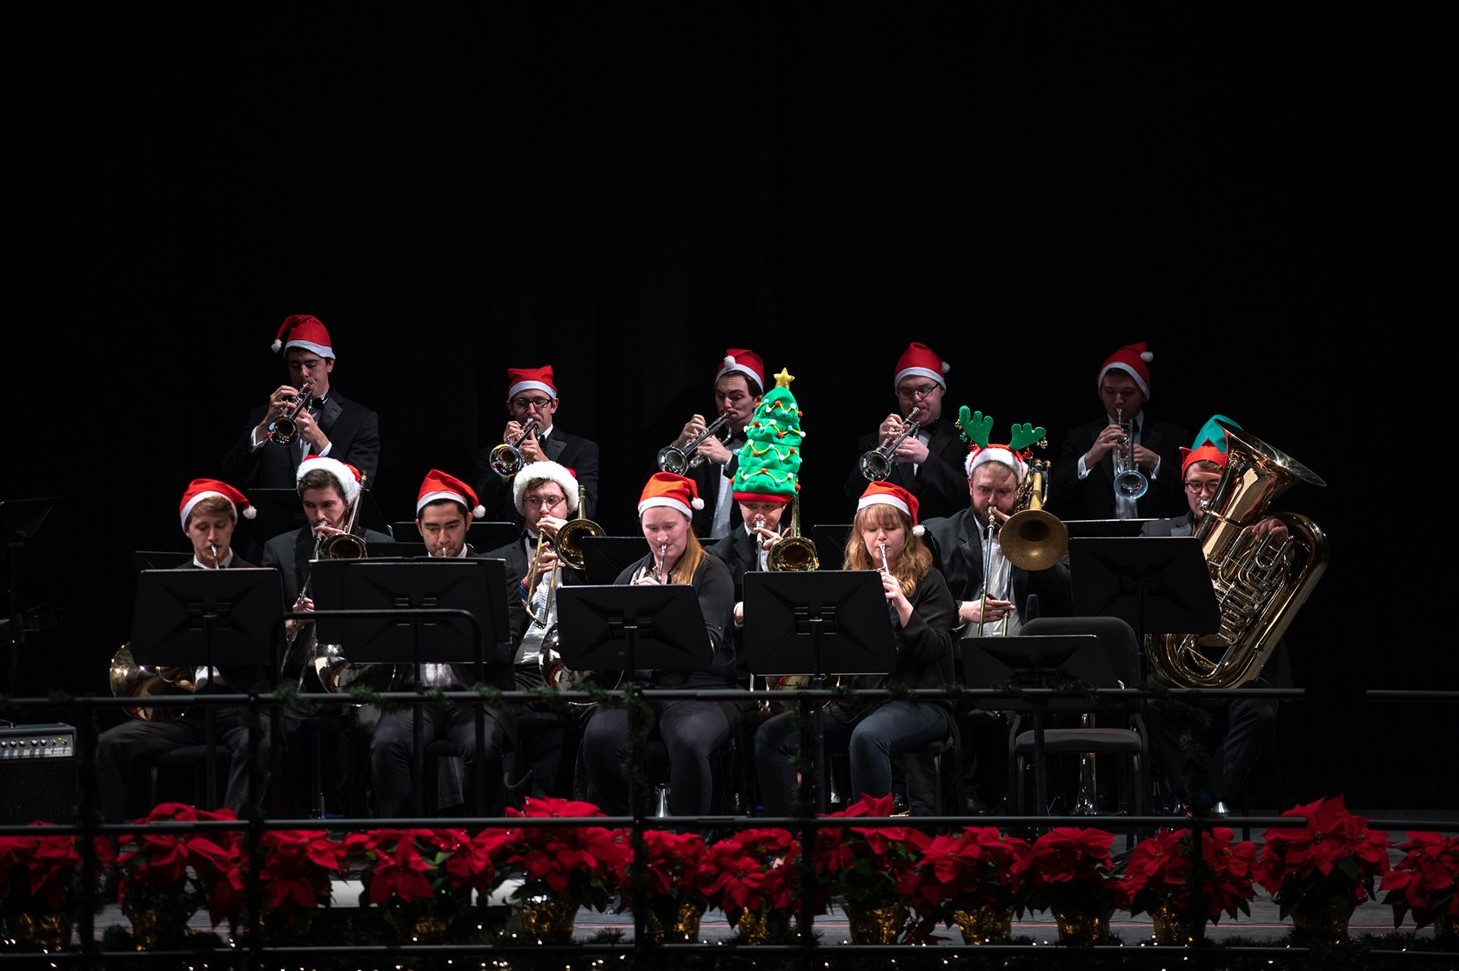 WCU's 99th Annual Holiday Program Available Via Livestream on Dec. 5